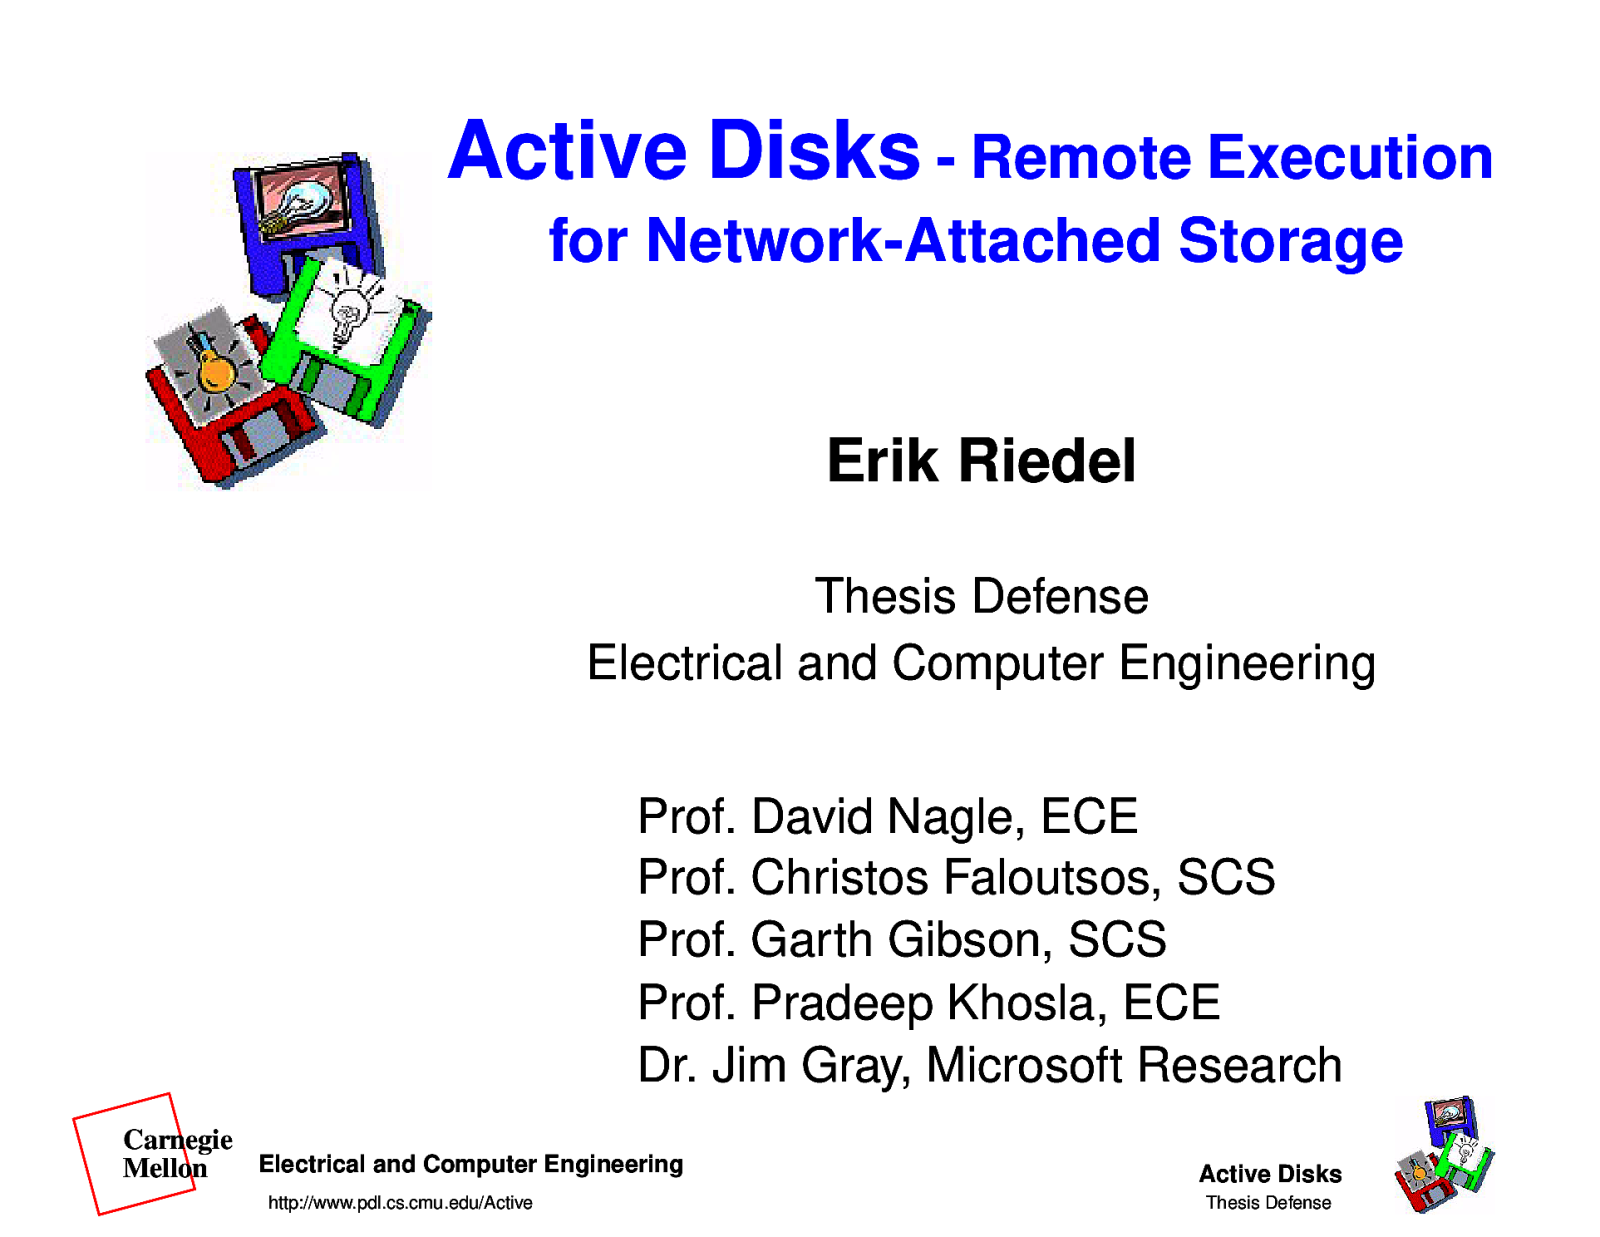 Active Disks - Remote Execution in Network-Attached Storage